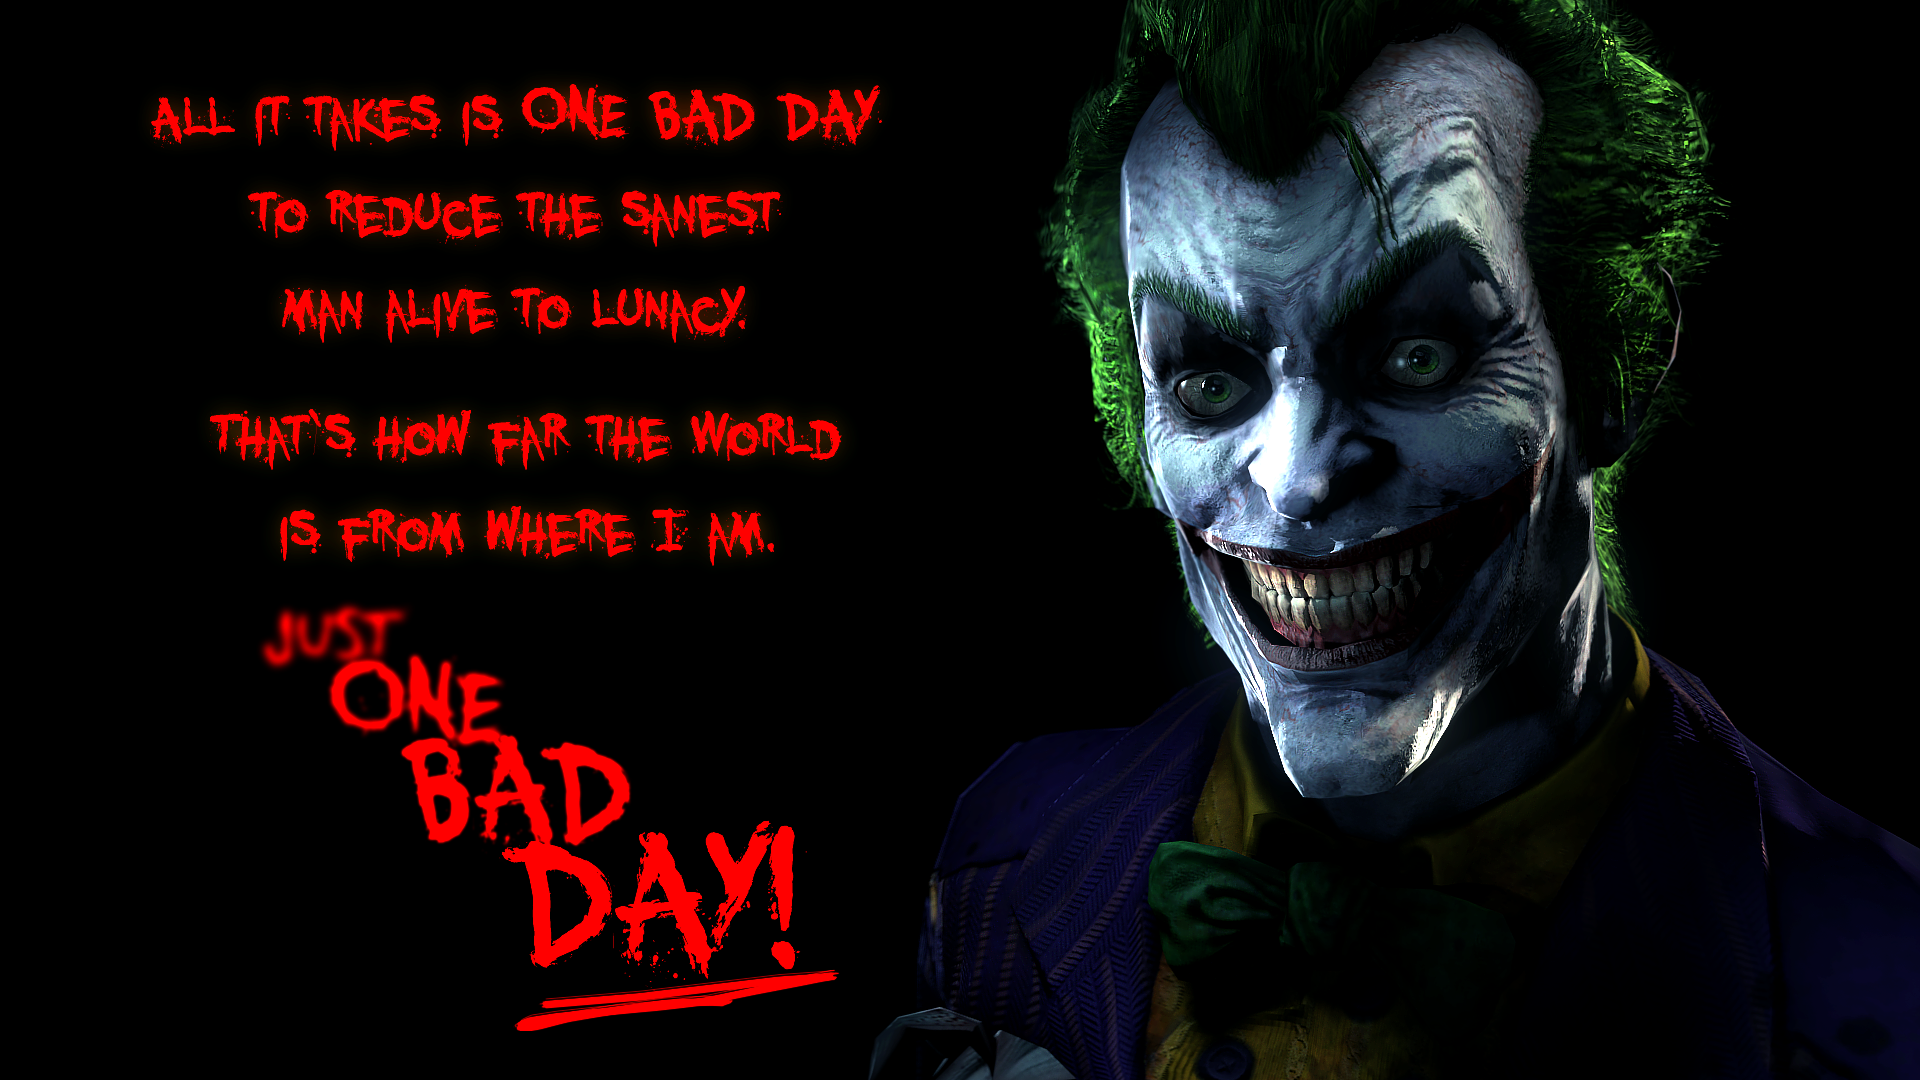 joker_wallpaper_by_the_combine-d7nxhjg.png